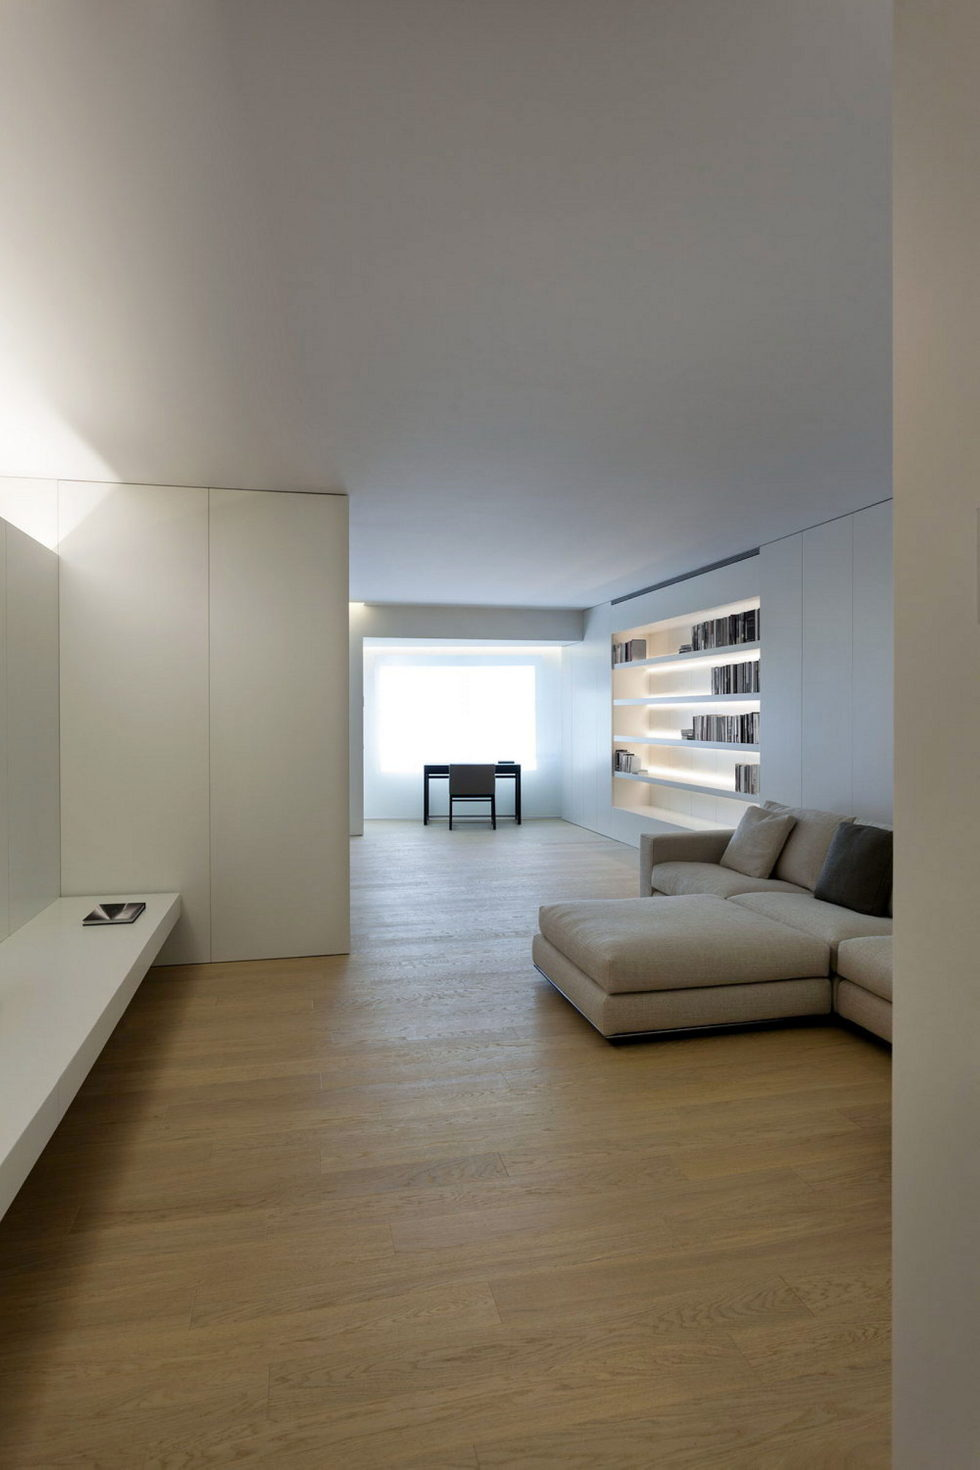 Contemporarily Designed Apartment In Valencia by Fran Silvestre Arquitectos 7